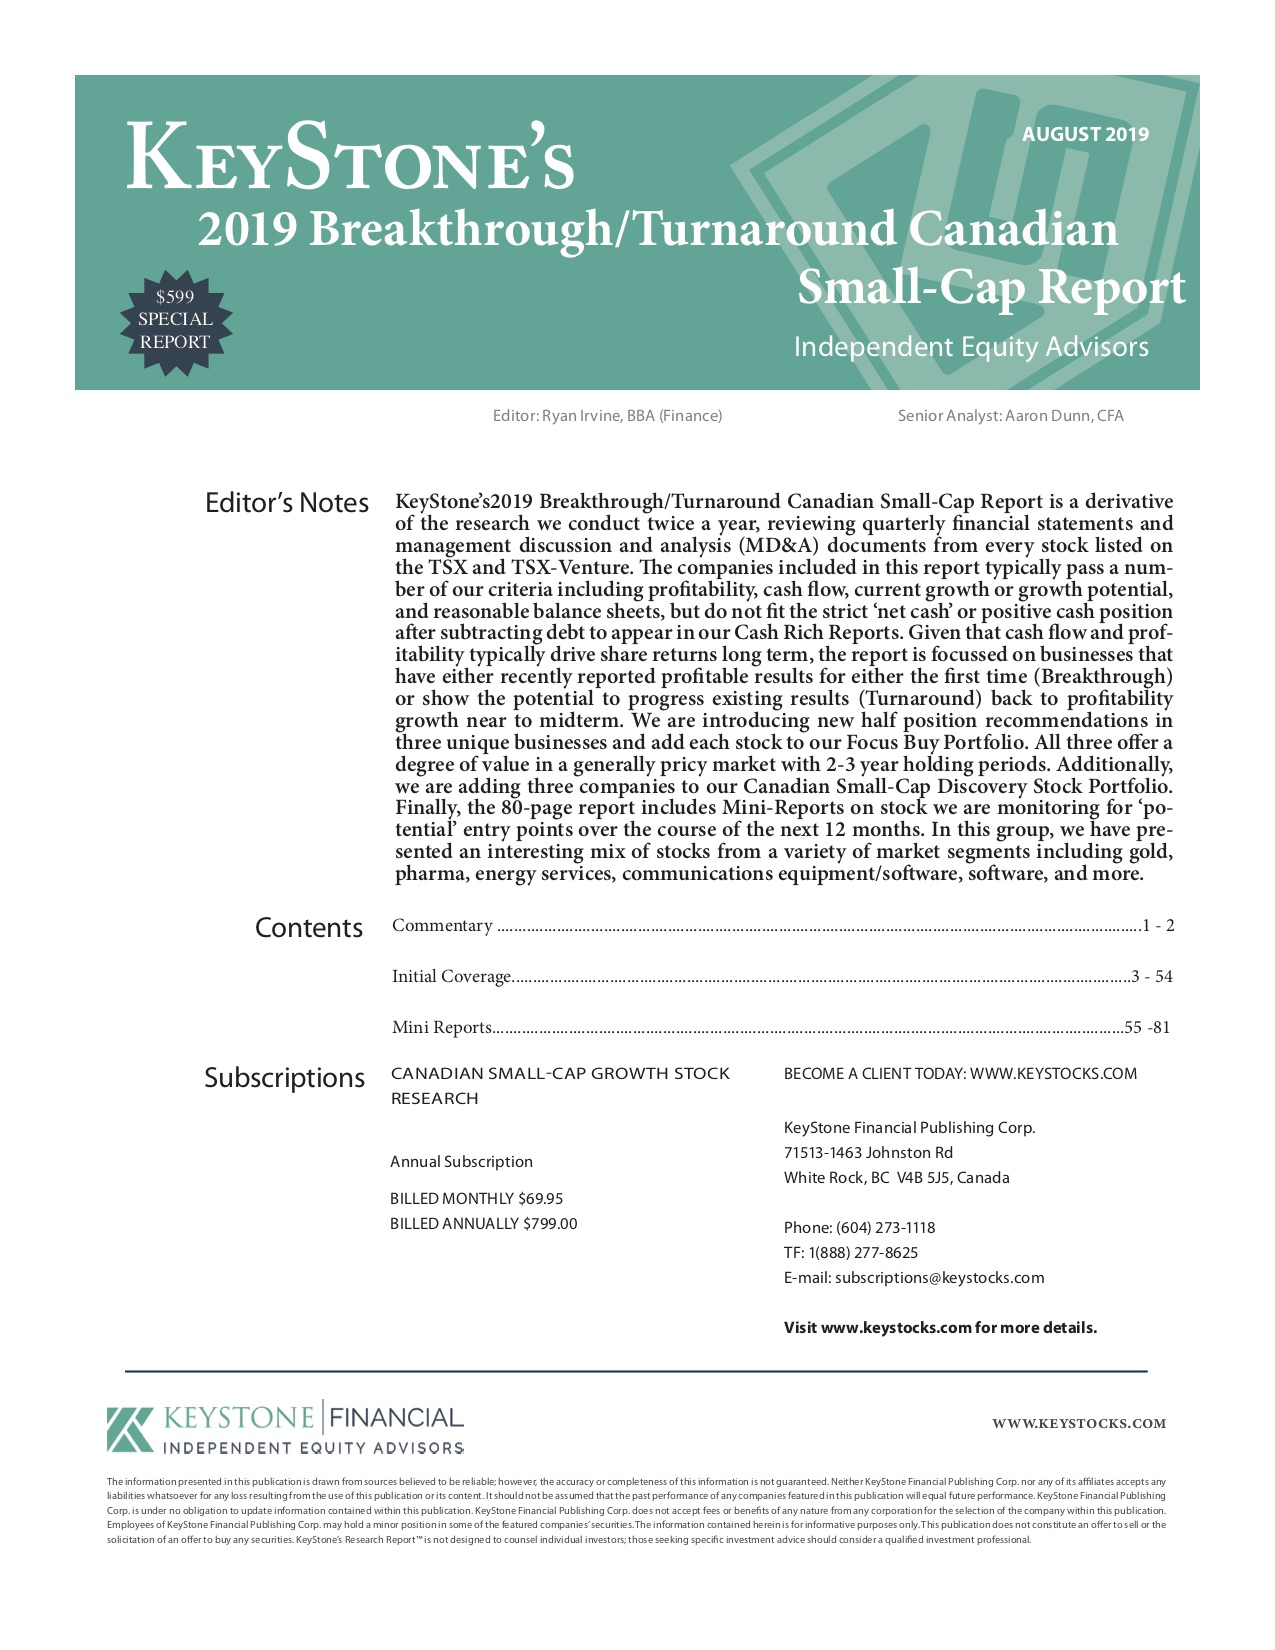 KeyStone's 2019 Breakthrough/Turnaround Canadian Small-Cap ...